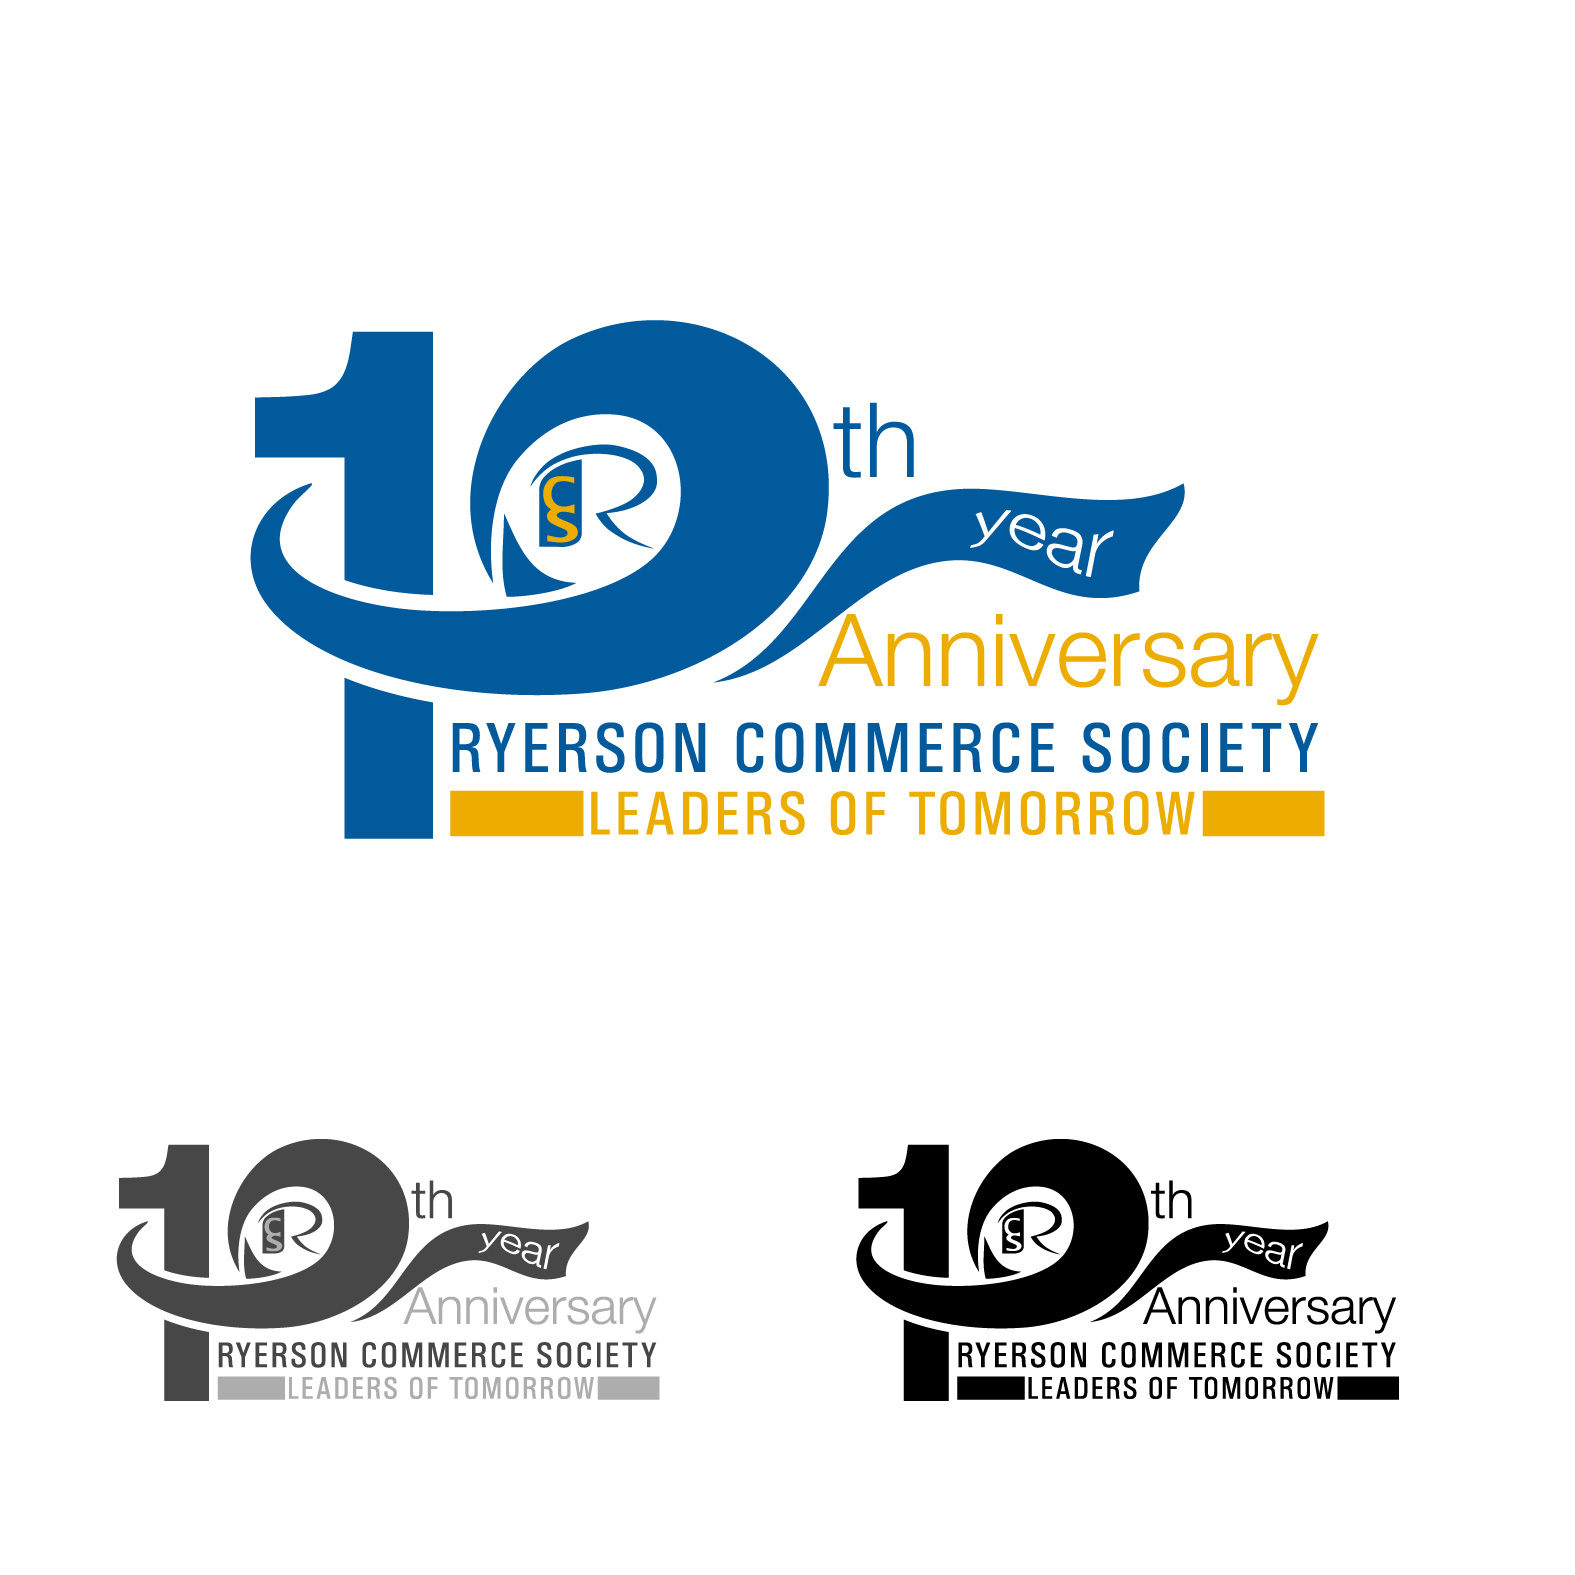 Logo Design by lagalag - Entry No. 68 in the Logo Design Contest 10 Year Anniversary Logo Design for the Ryerson Commerce Society.